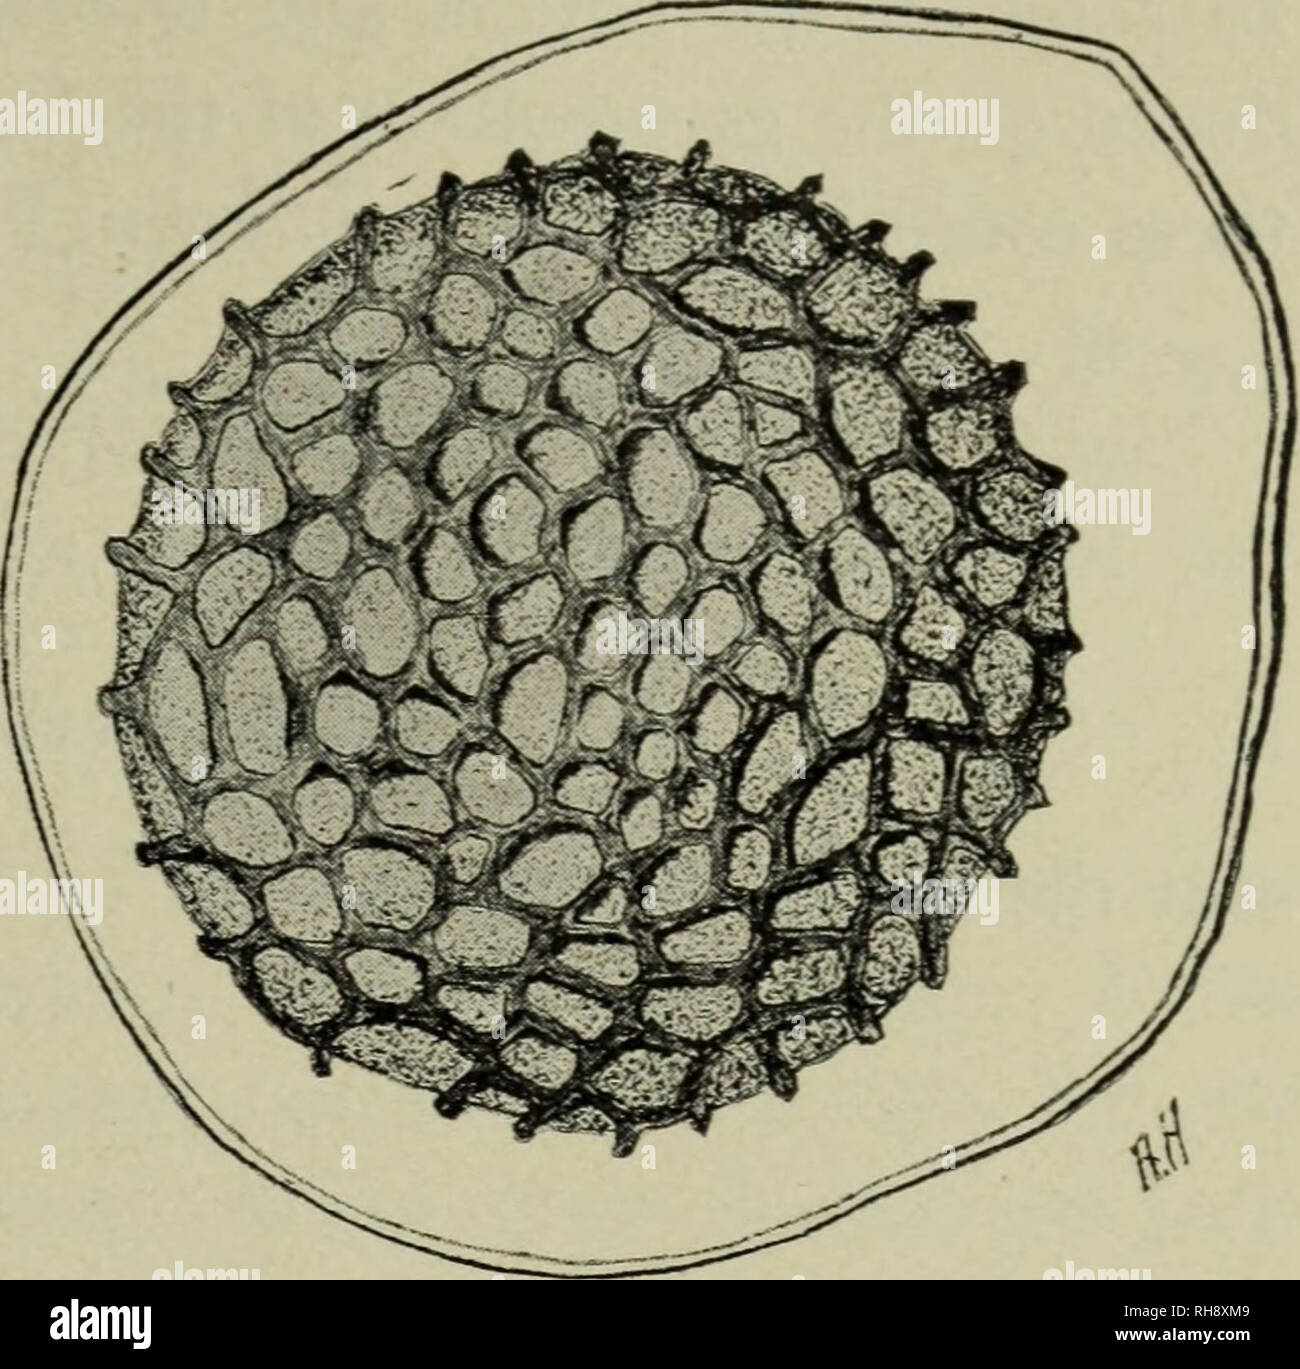 . Botany for high schools. Botany. FUNGI, WHITE RUST 259. Fig. 218. Ripe oospore of Peronospora aisinearum. Candida) is very common on the shepherd's purse, deforming the stems, leaves, flowers, and fruit. The mycelium is intercellular, and branched haustoria penetrate the cells. 419. Asexual stage.— The sporophores are short, are developed in great numbers, and crowded un- derneath the epidermis. These sporophores bear chains of spores (conidia; fig. 219), and the mass bursts through the epi- dermis, giving a white rusty appearance. The spores germinate by the formation of zoospores as in the - Stock Image